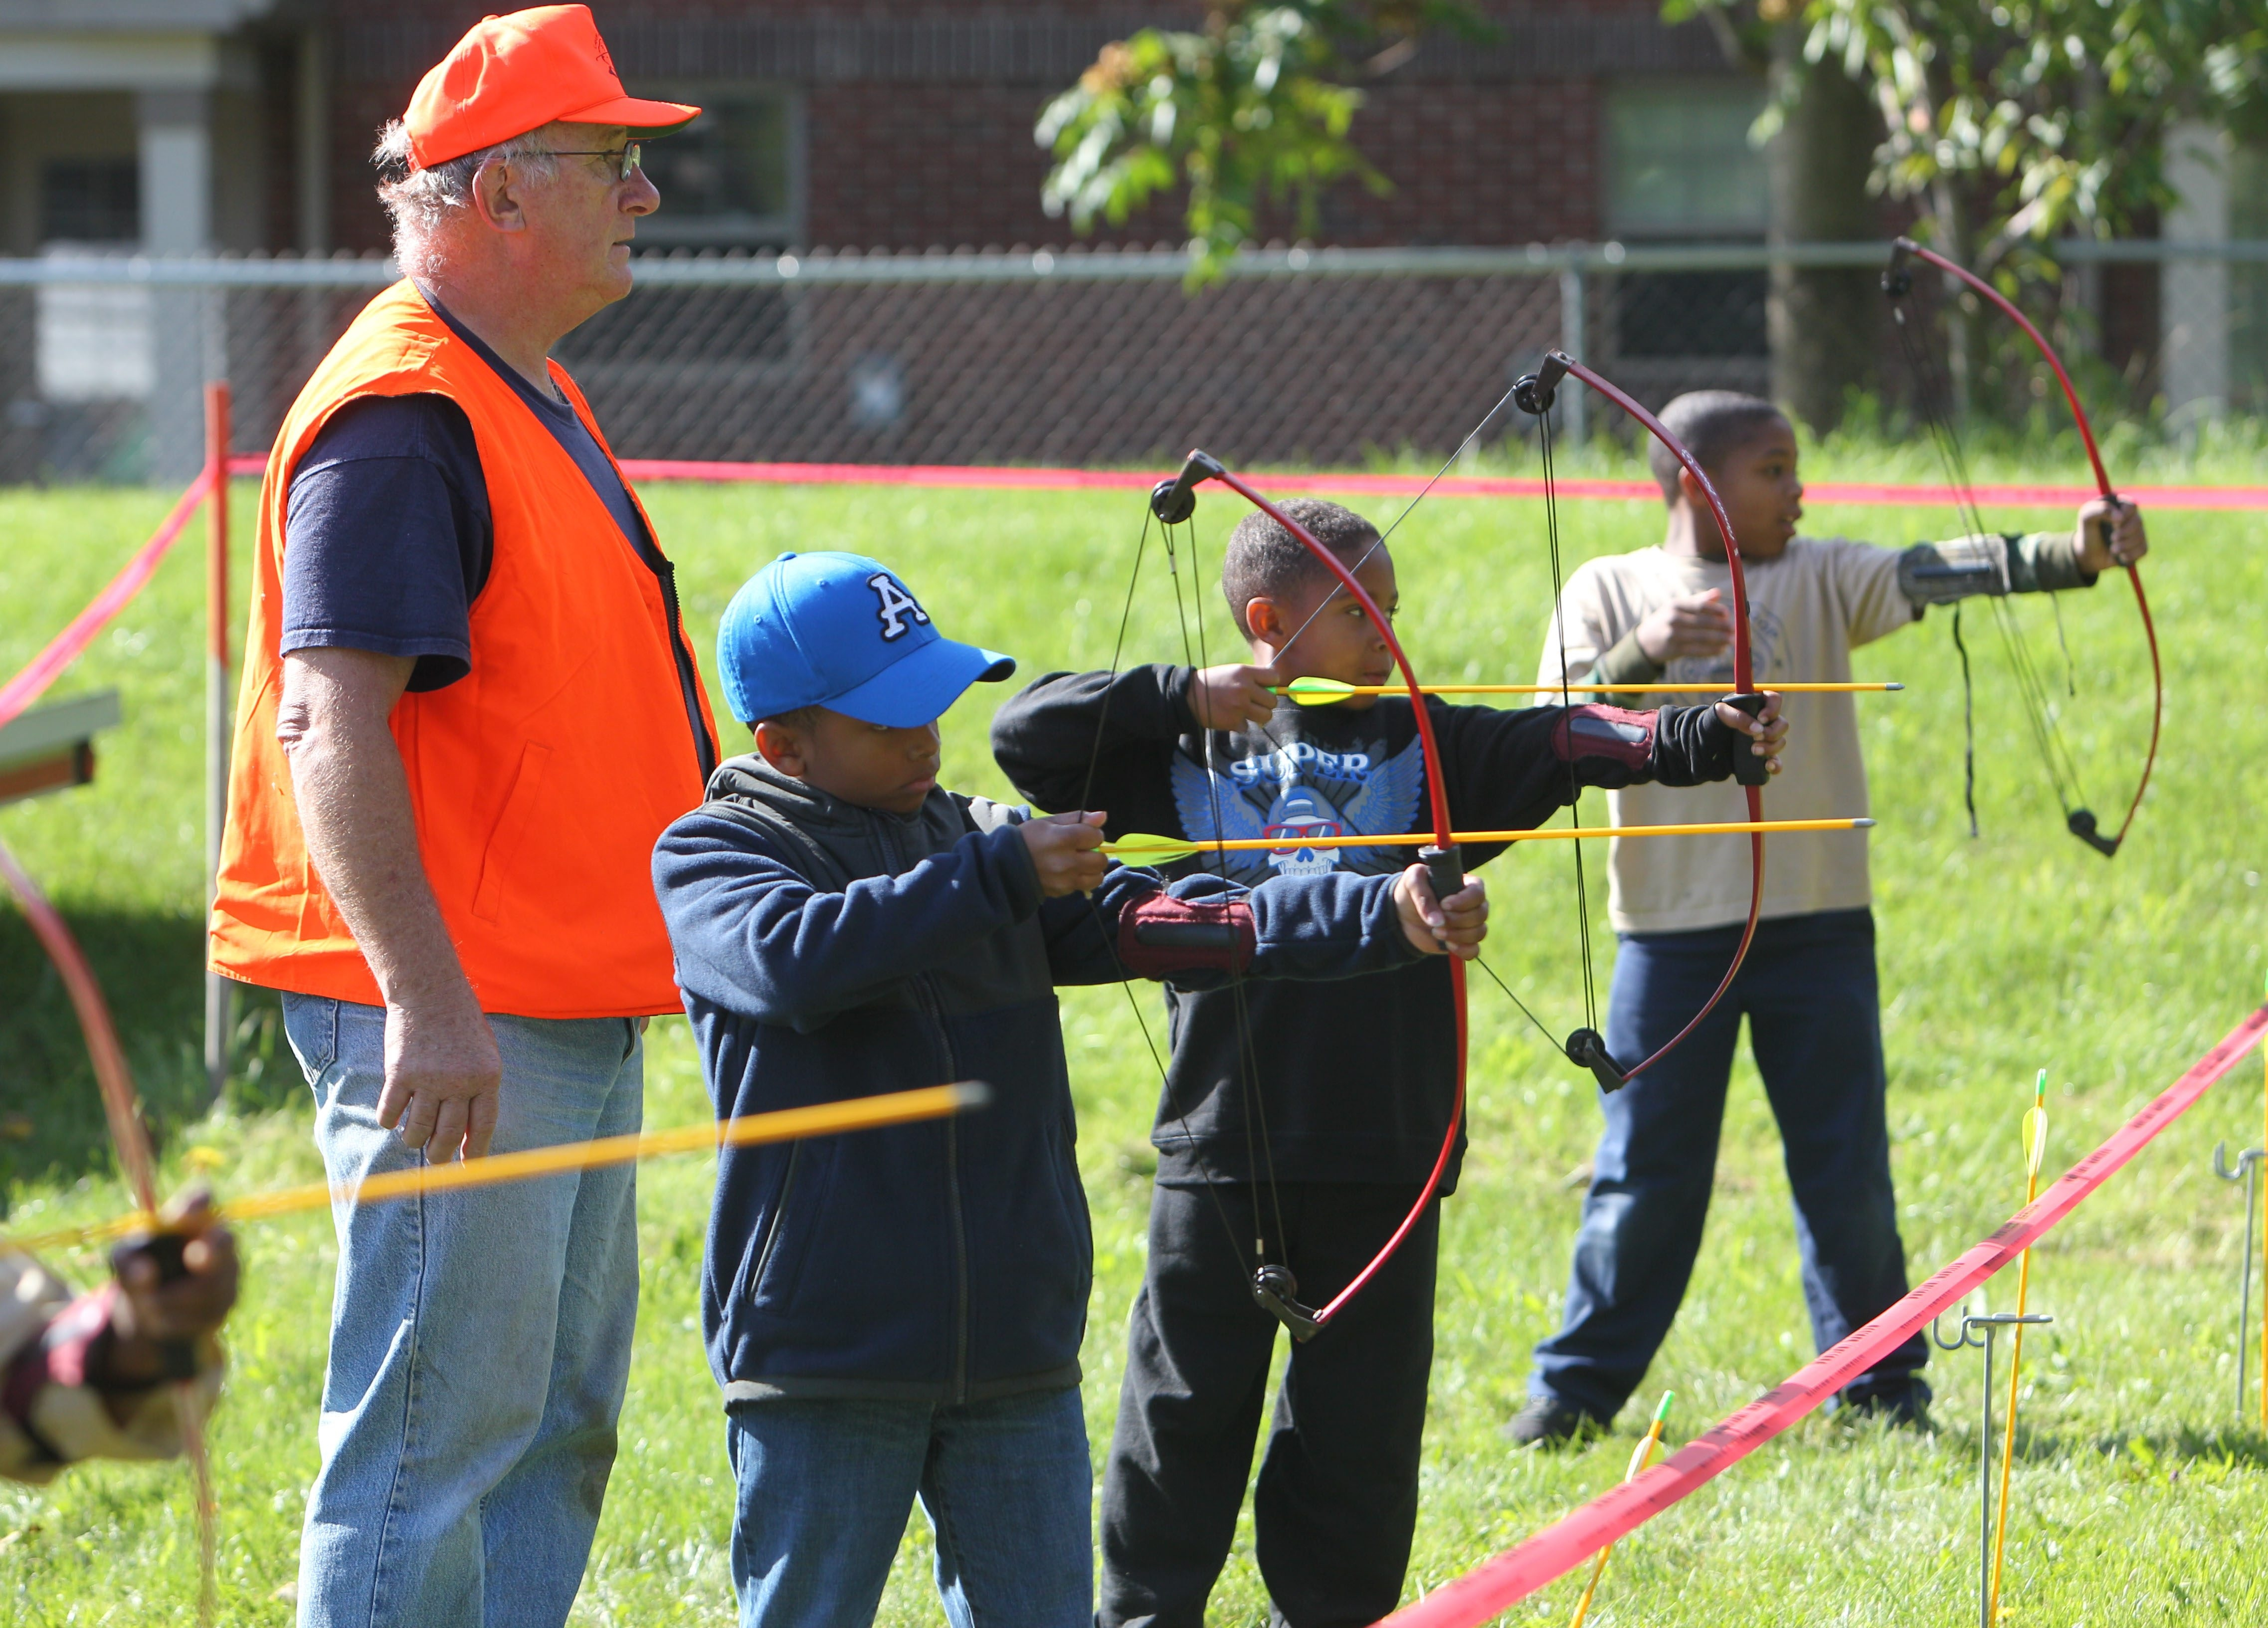 Mike Stewart teaches archery skills to Christopher Price, 10, Isaiah Allen, 8, and Keith Wilson, 9, at the fourth annual Buffalo District Camporee at St. Martin De Porres Church on Saturday.